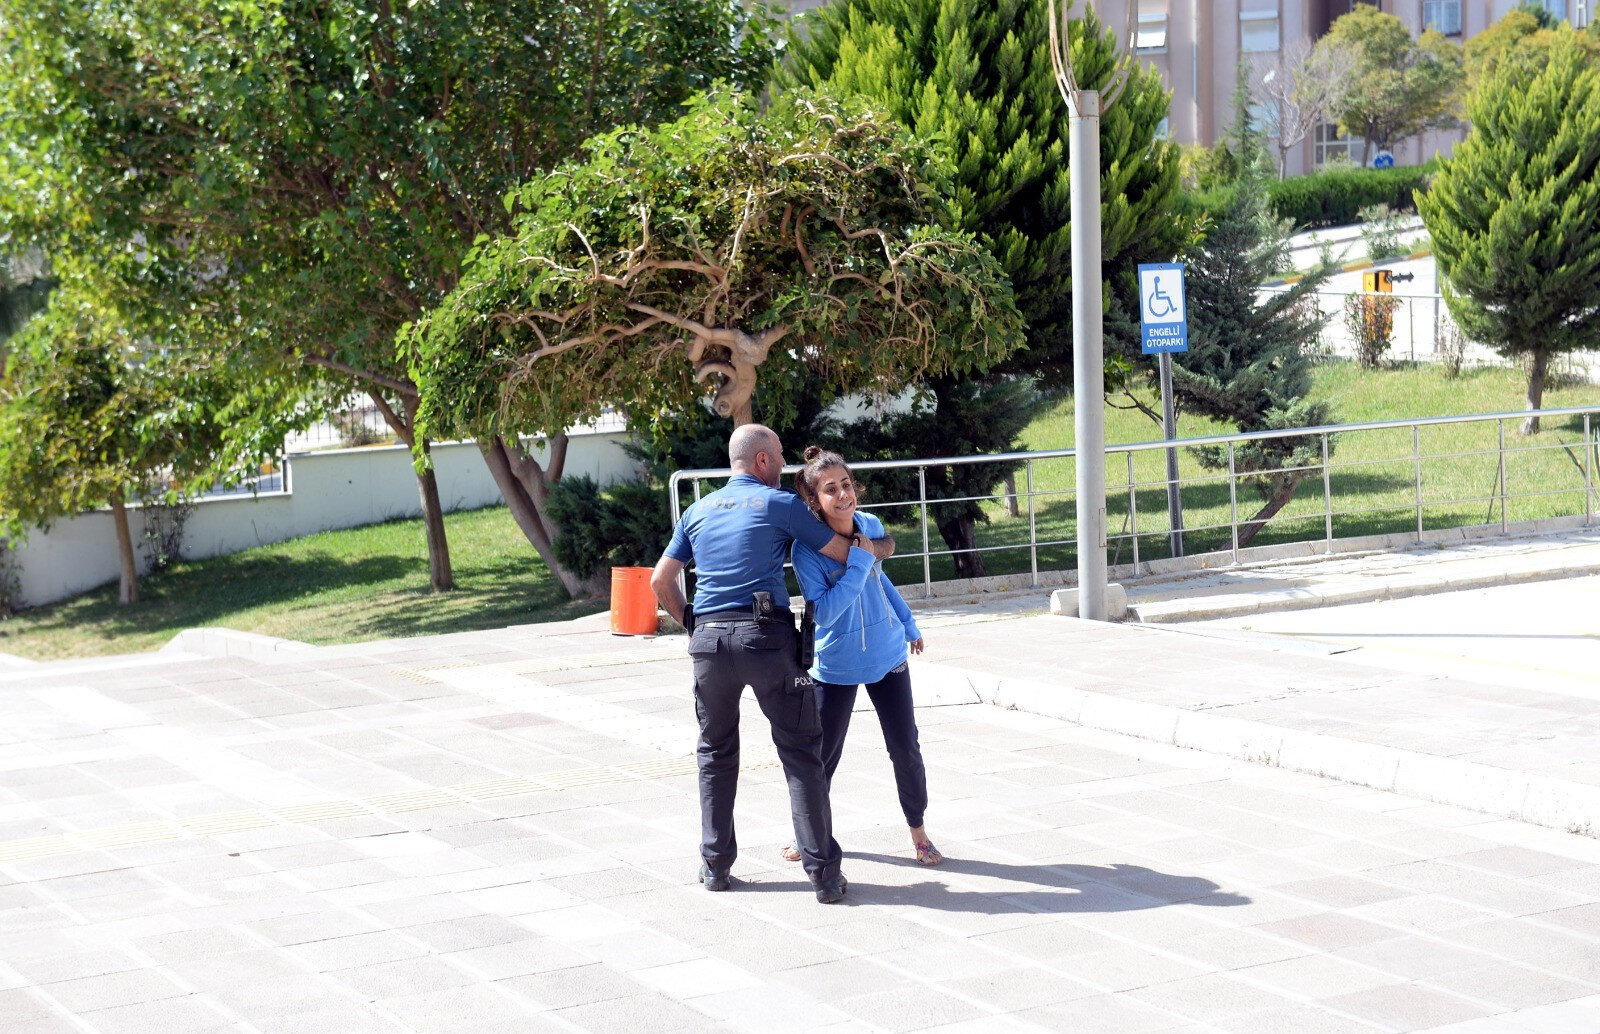 Saying that she wanted to meet with the judge so that Oğuzhan K. could be tried pending trial, Elif D. threw herself to the ground when she was not taken to the courthouse.